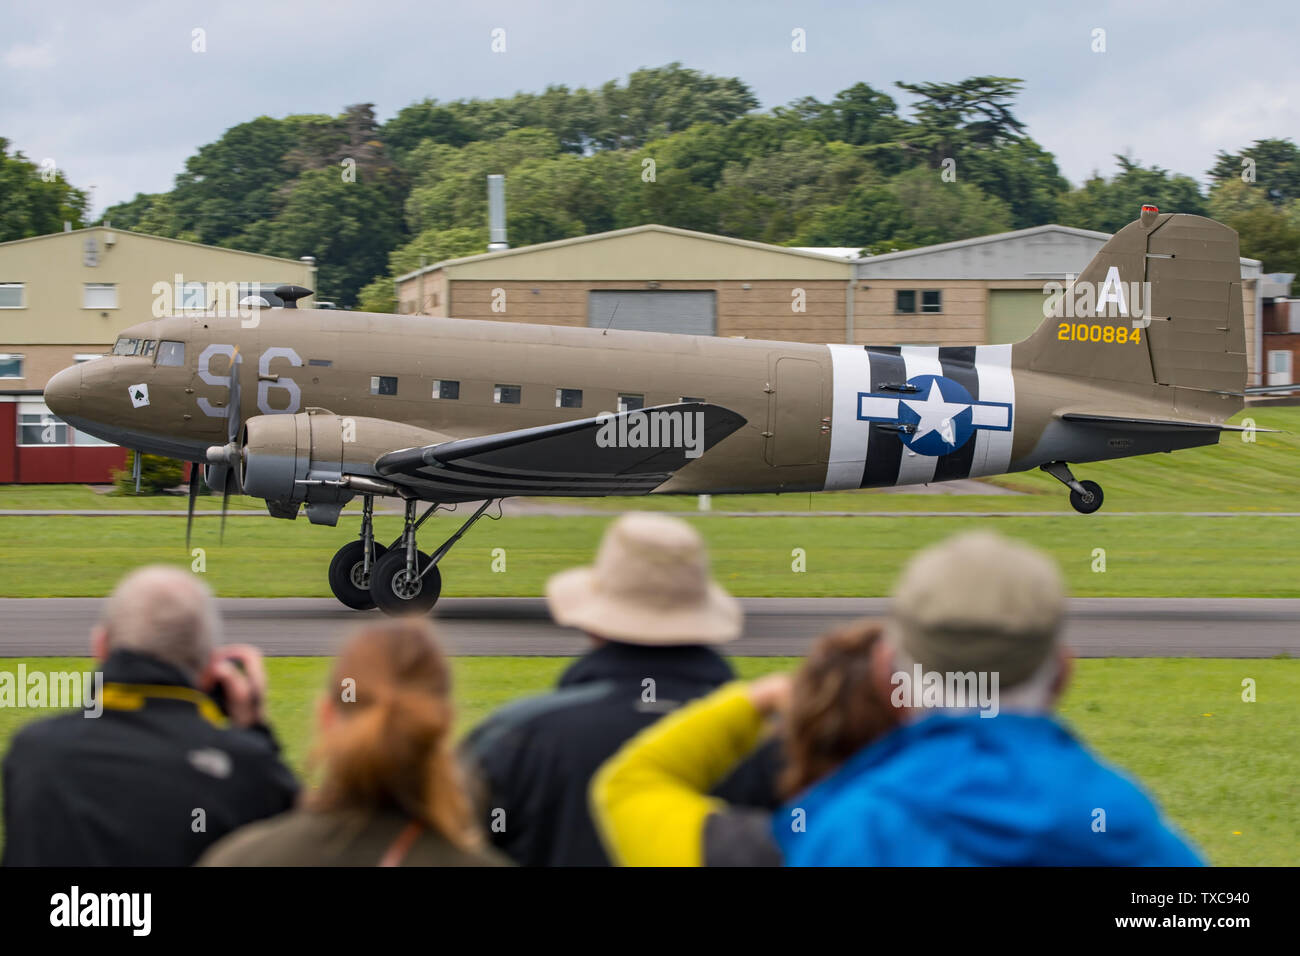 Douglas C-47 Skytrain WW2 transport aircraft about to take off and display at Dunsfold Aerodrome, UK for the last Wings & Wheels airshow on 16/6/19. - Stock Image